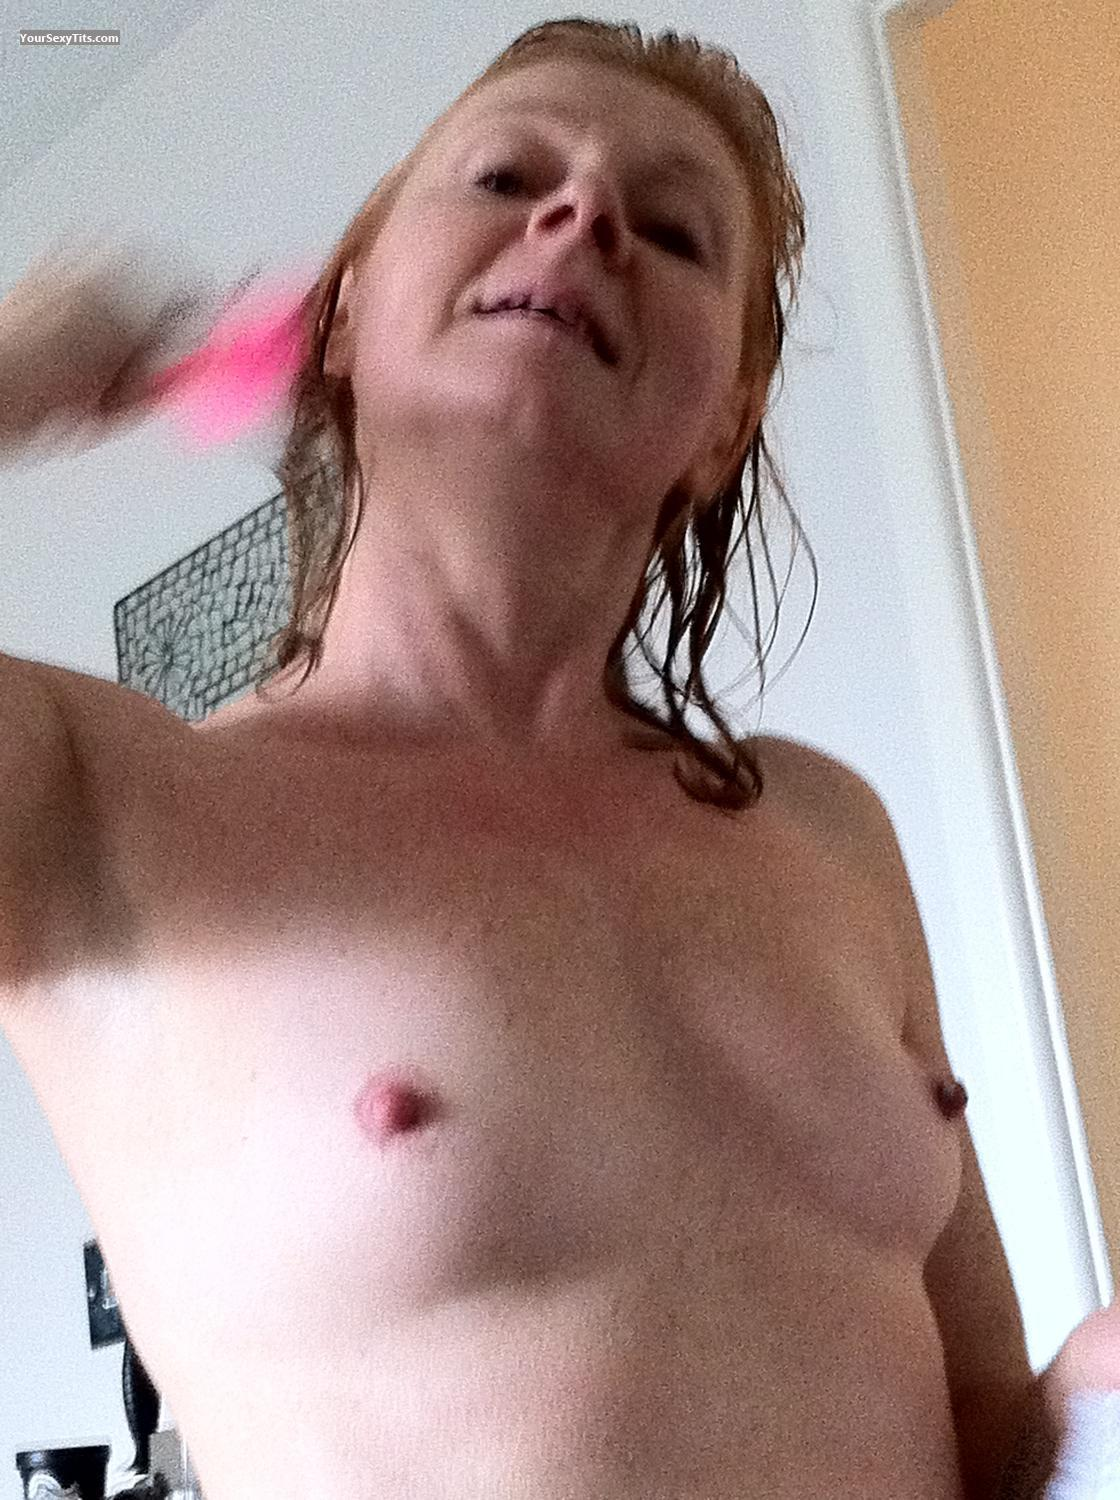 Tit Flash: Small Tits By IPhone - Topless J from United KingdomPierced Nipples